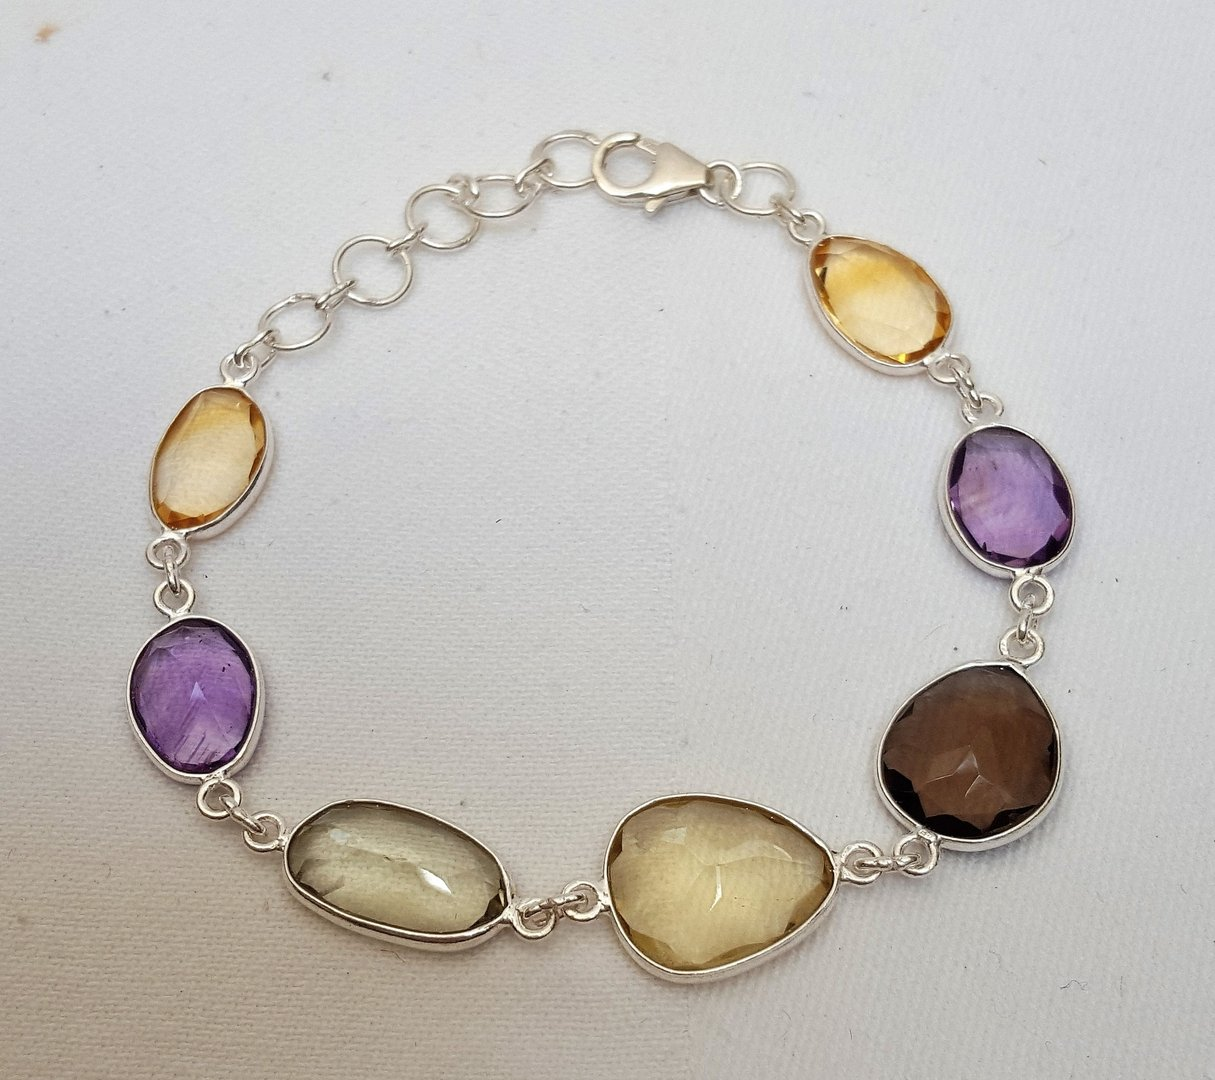 CITRINE, AMETHYSTE,QUARTZ FUME, HIDDENITE - bracelet formé de 7 pierres naturelles facettées,